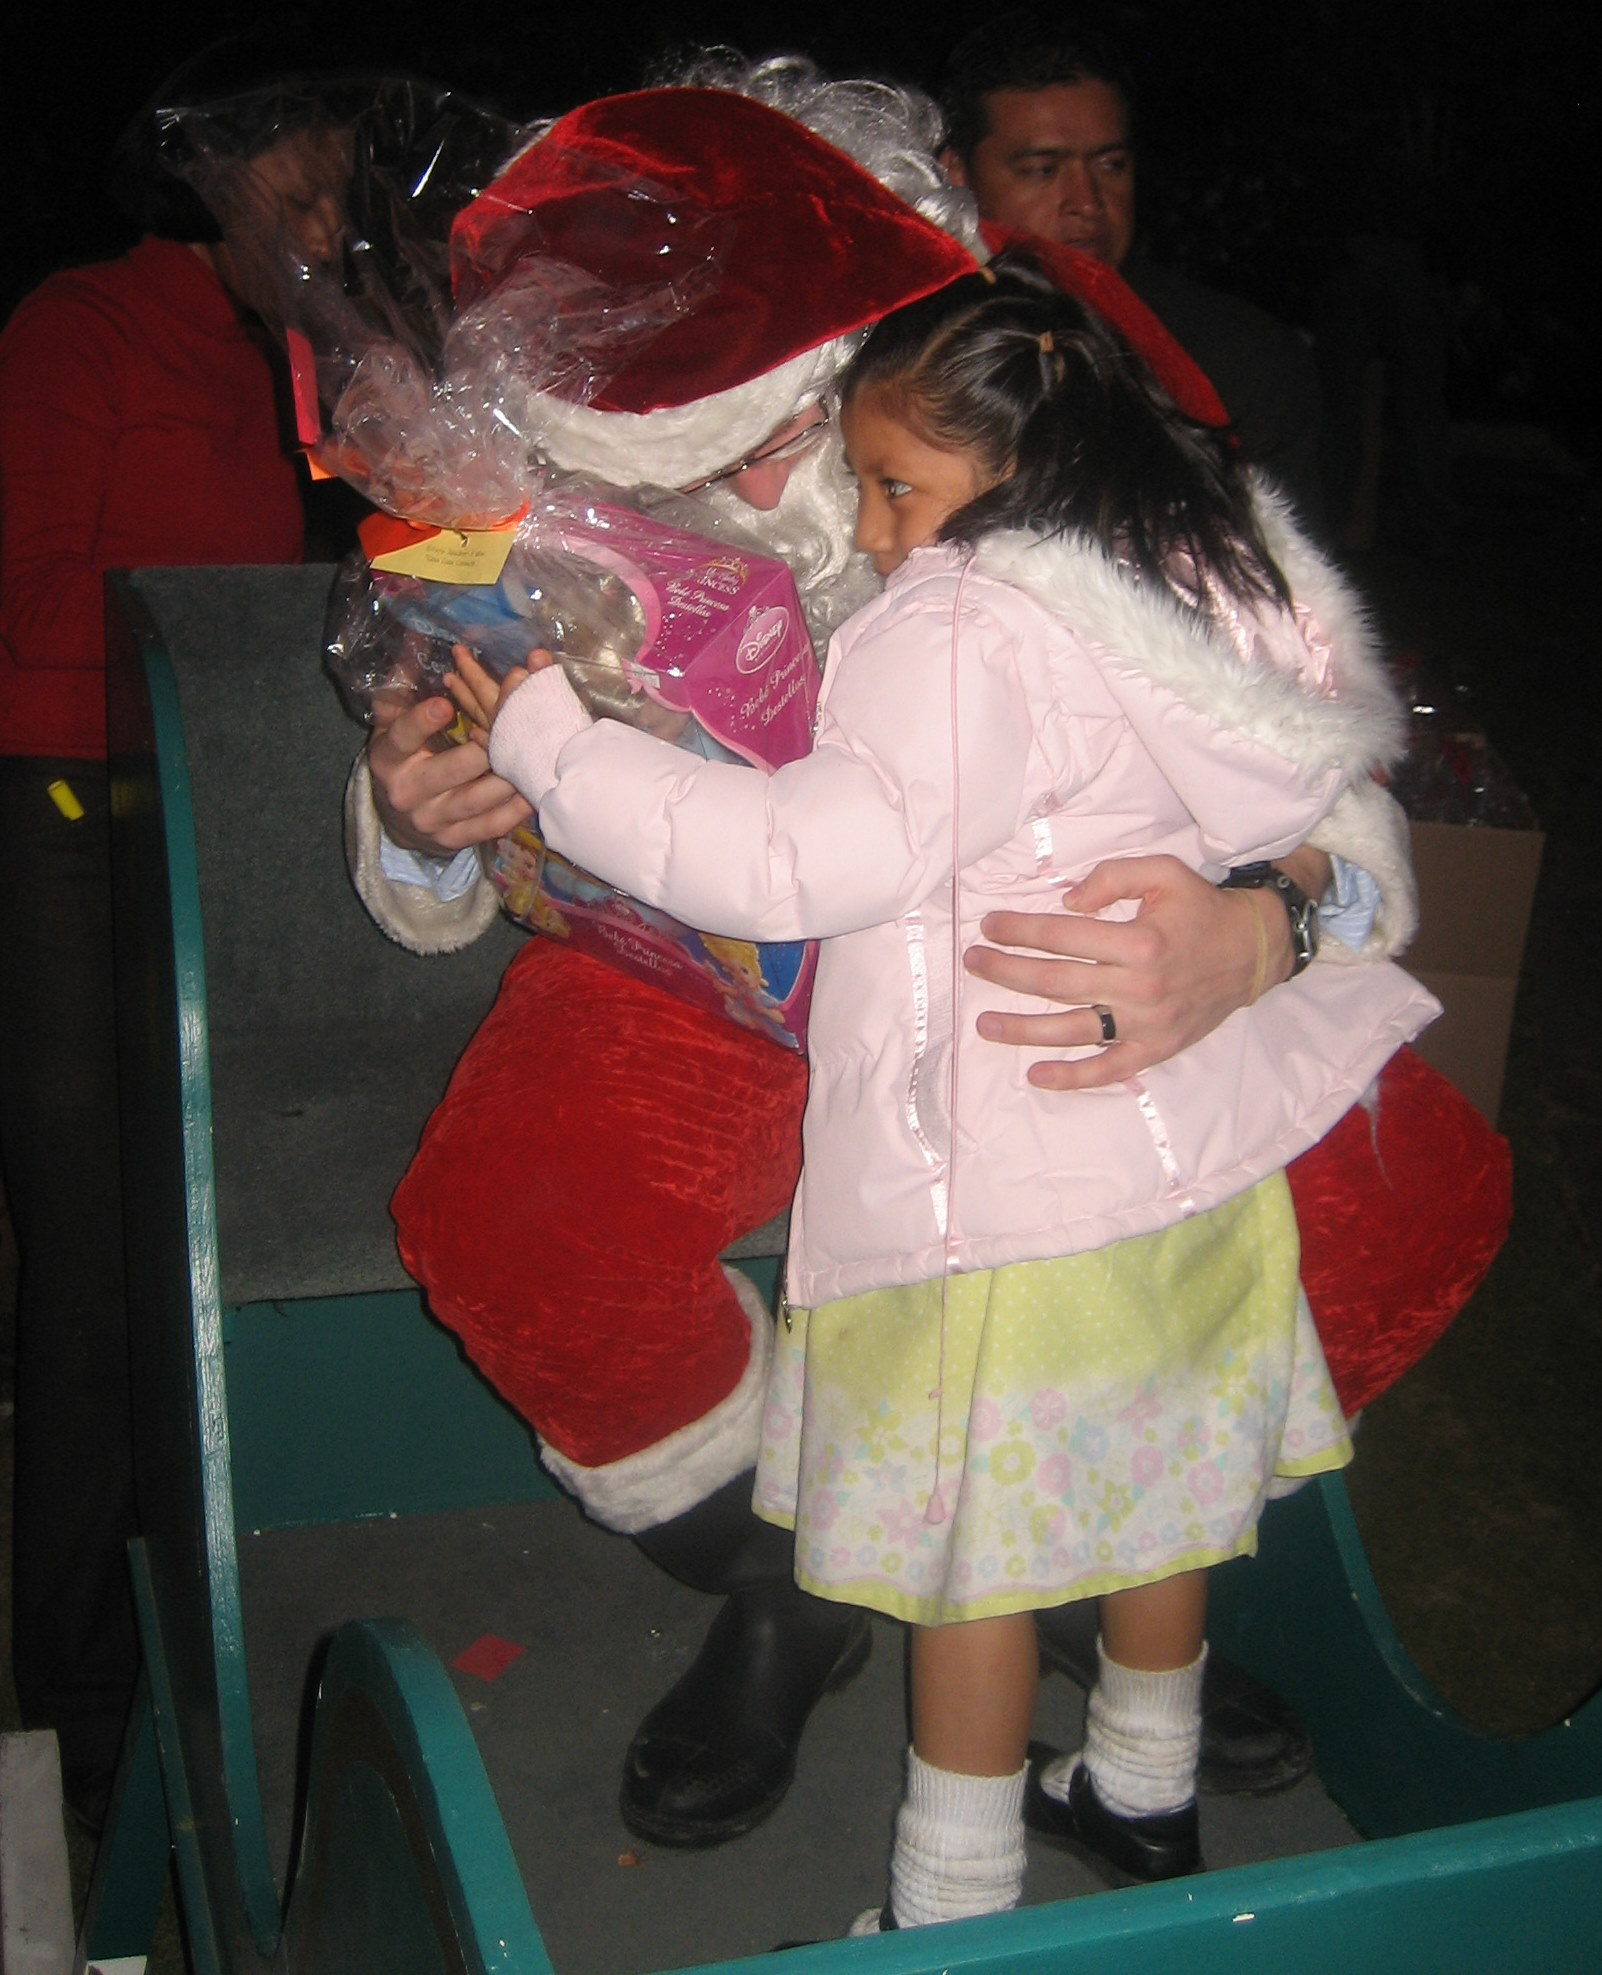 I got big hugs from most of the little ones; some even gave me a piece of candy or other small gift